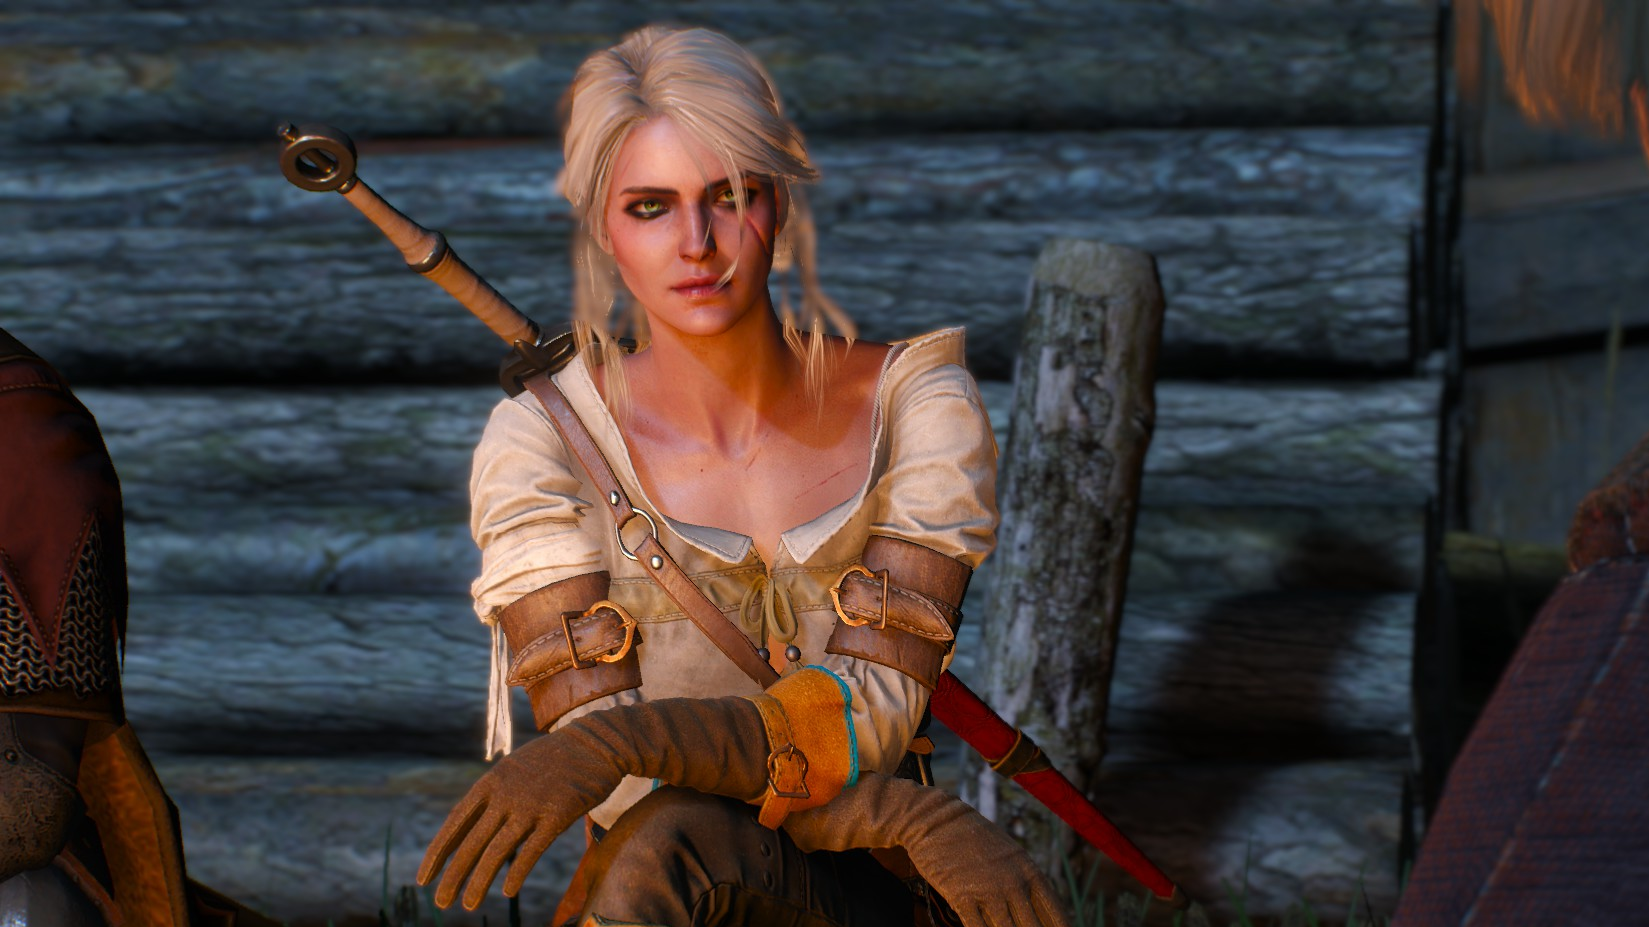 The Witcher's Ciri Could Have Visited Cyberpunk 2077's World